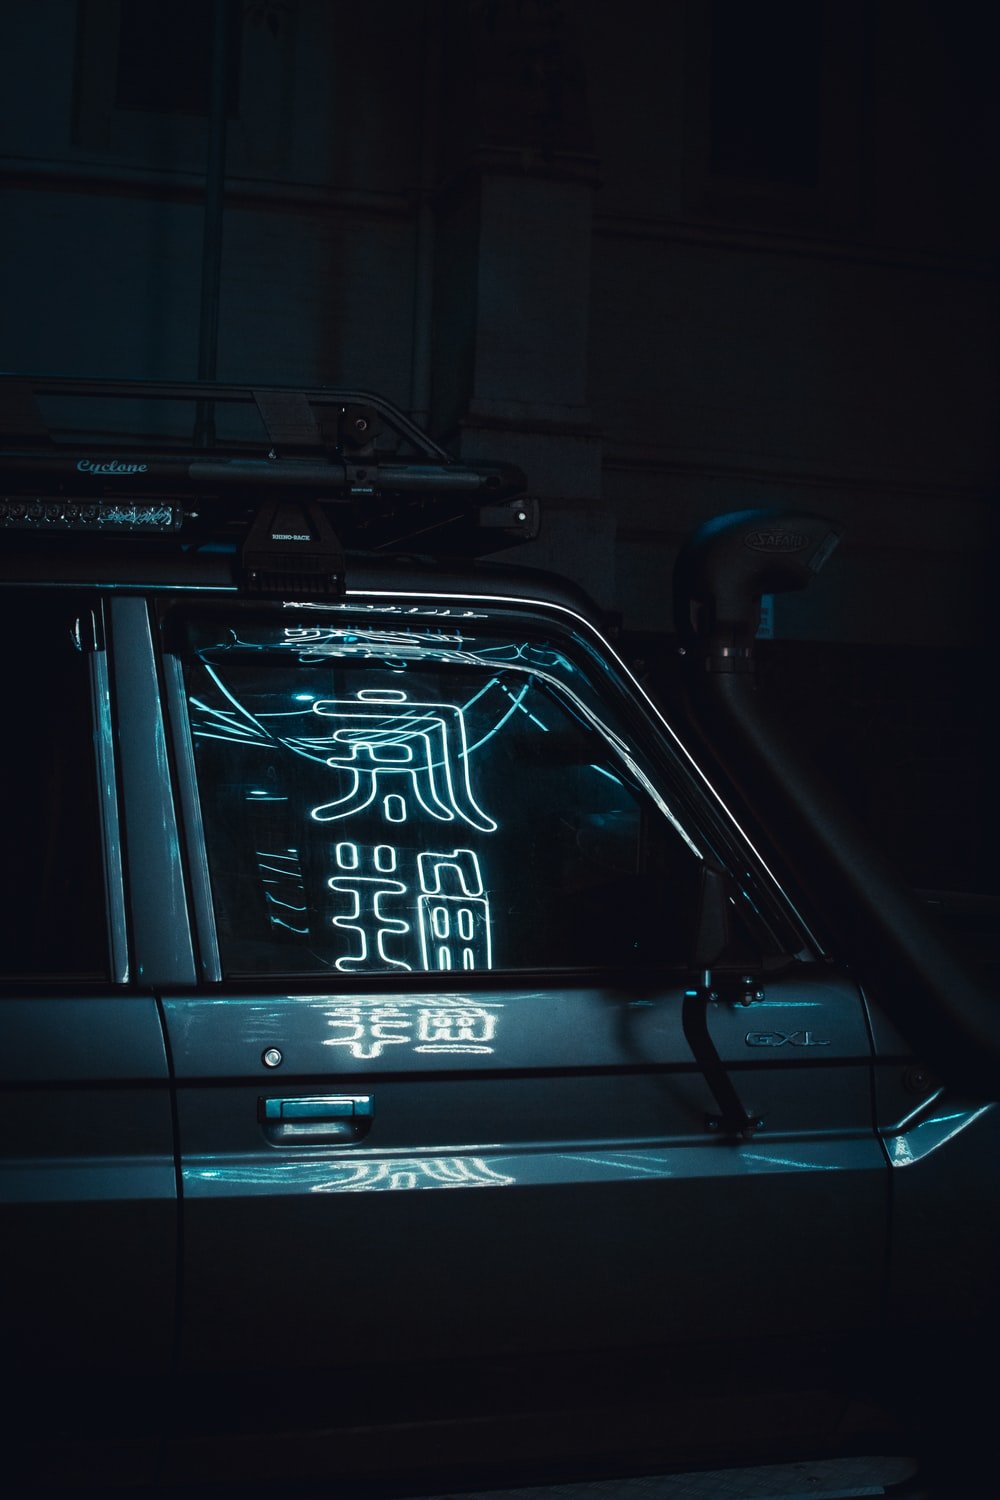 parked car with kanji signage reflecting on it